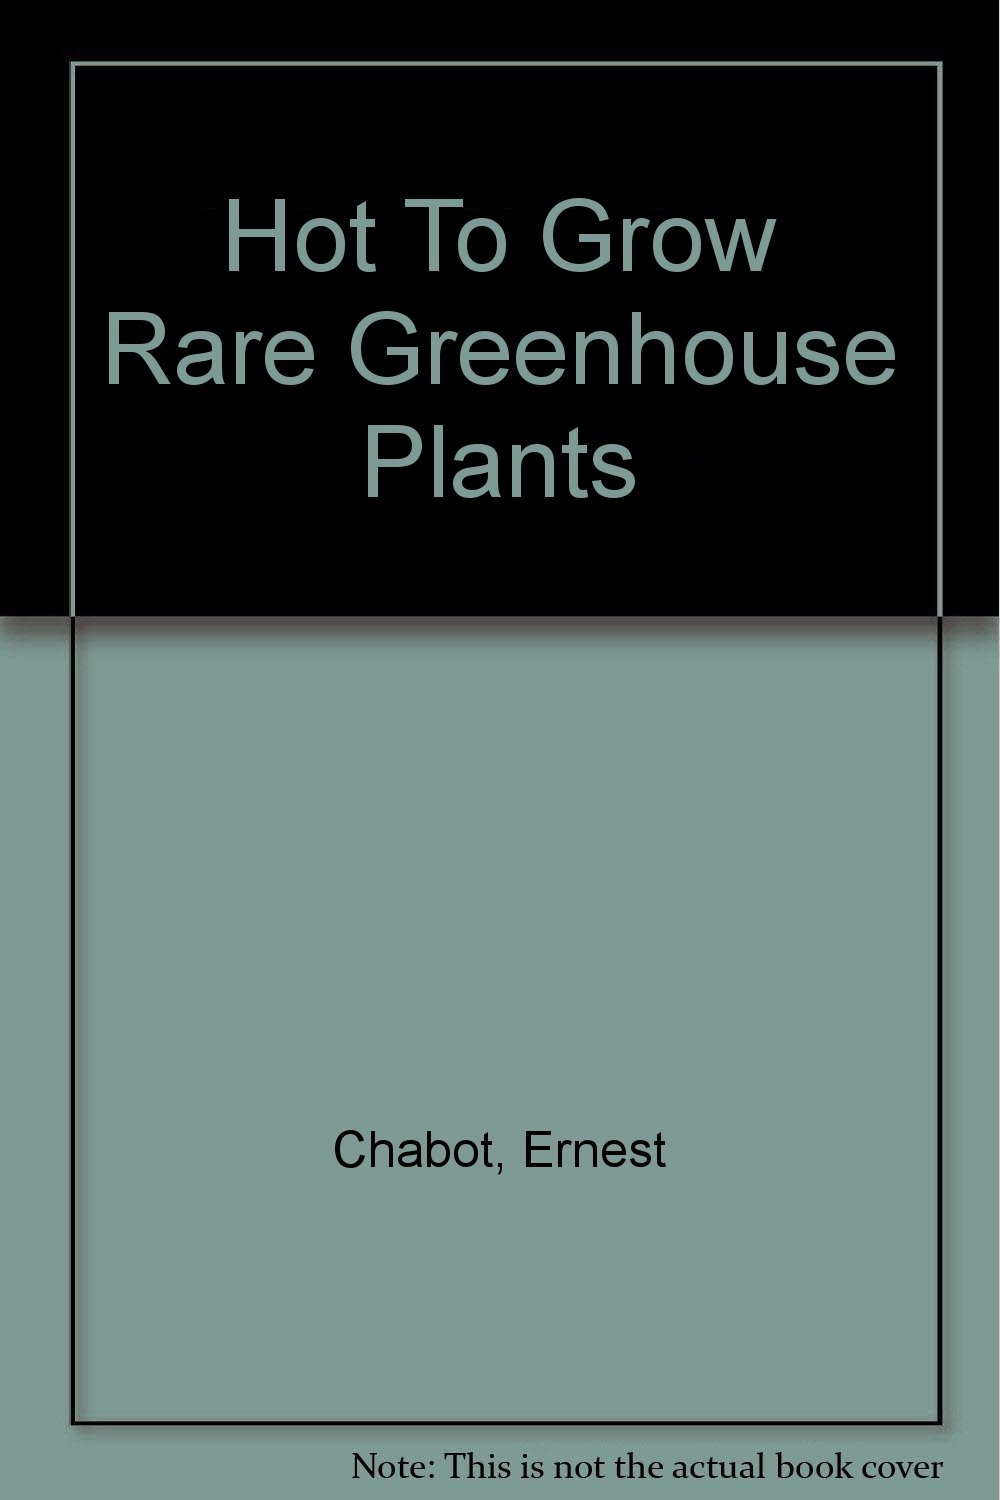 hot-to-grow-rare-greenhouse-plants